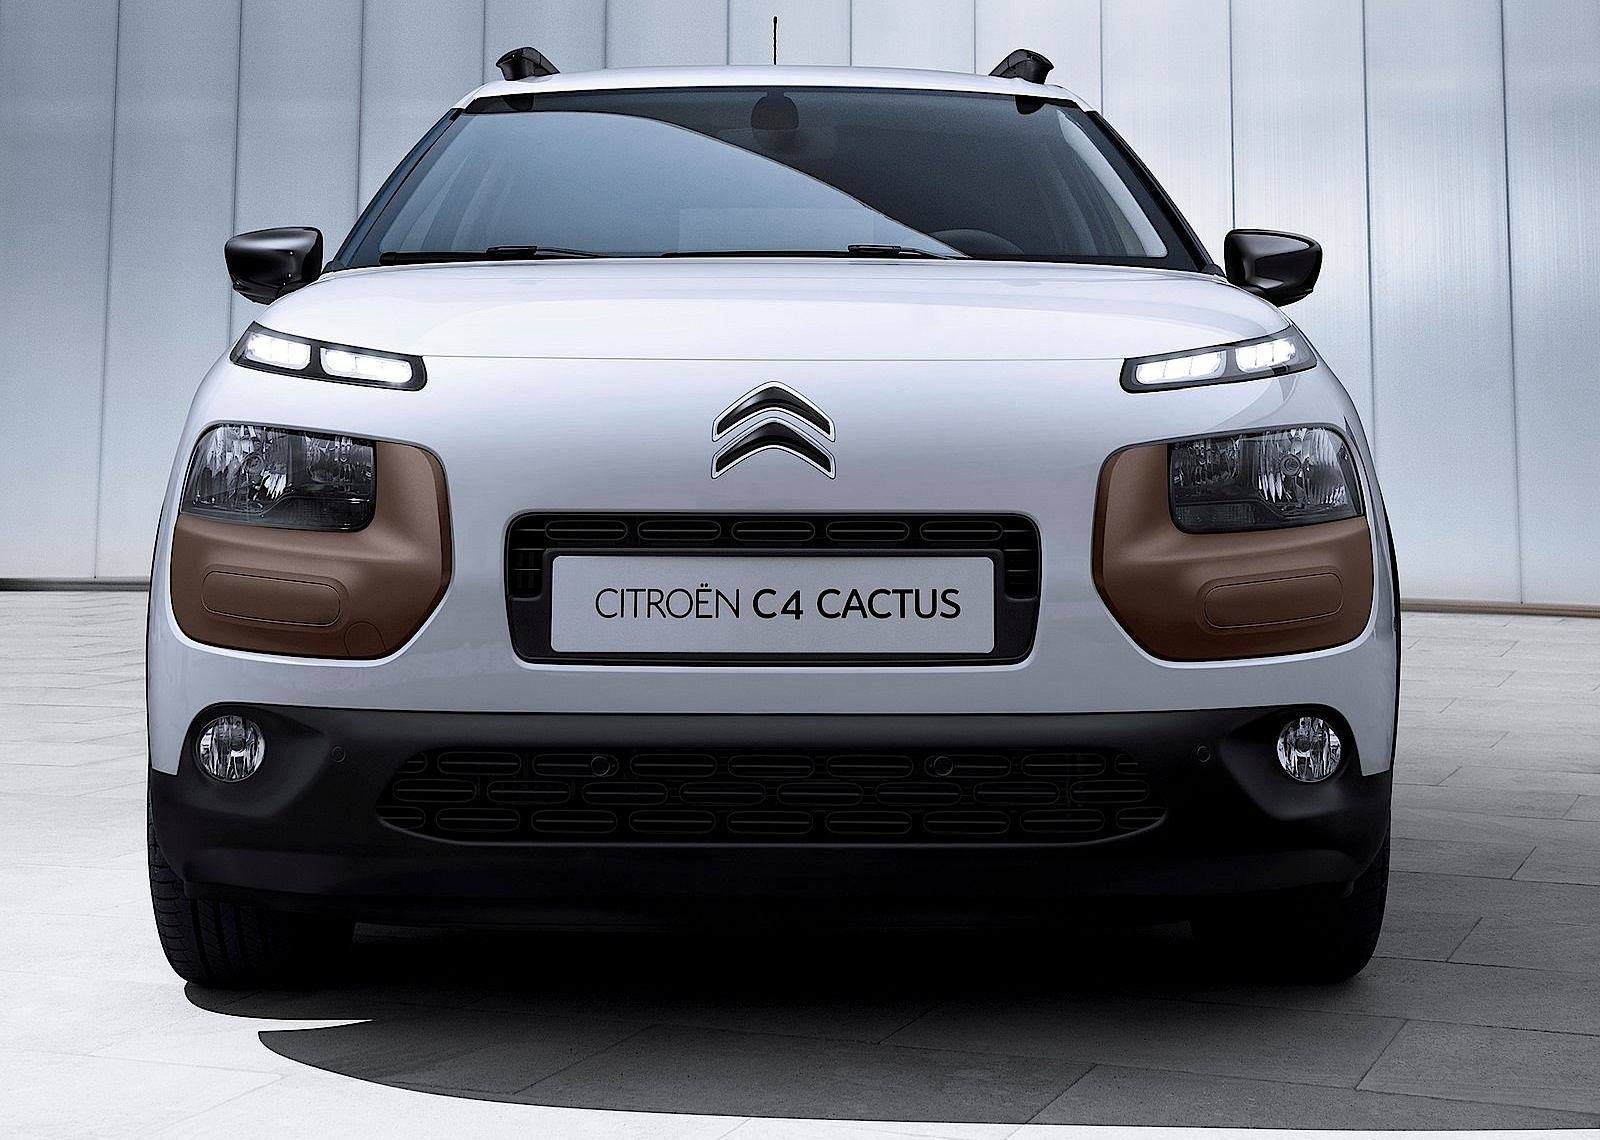 citroen c4 cactus specs 2014 2015 2016 2017 2018 autoevolution. Black Bedroom Furniture Sets. Home Design Ideas